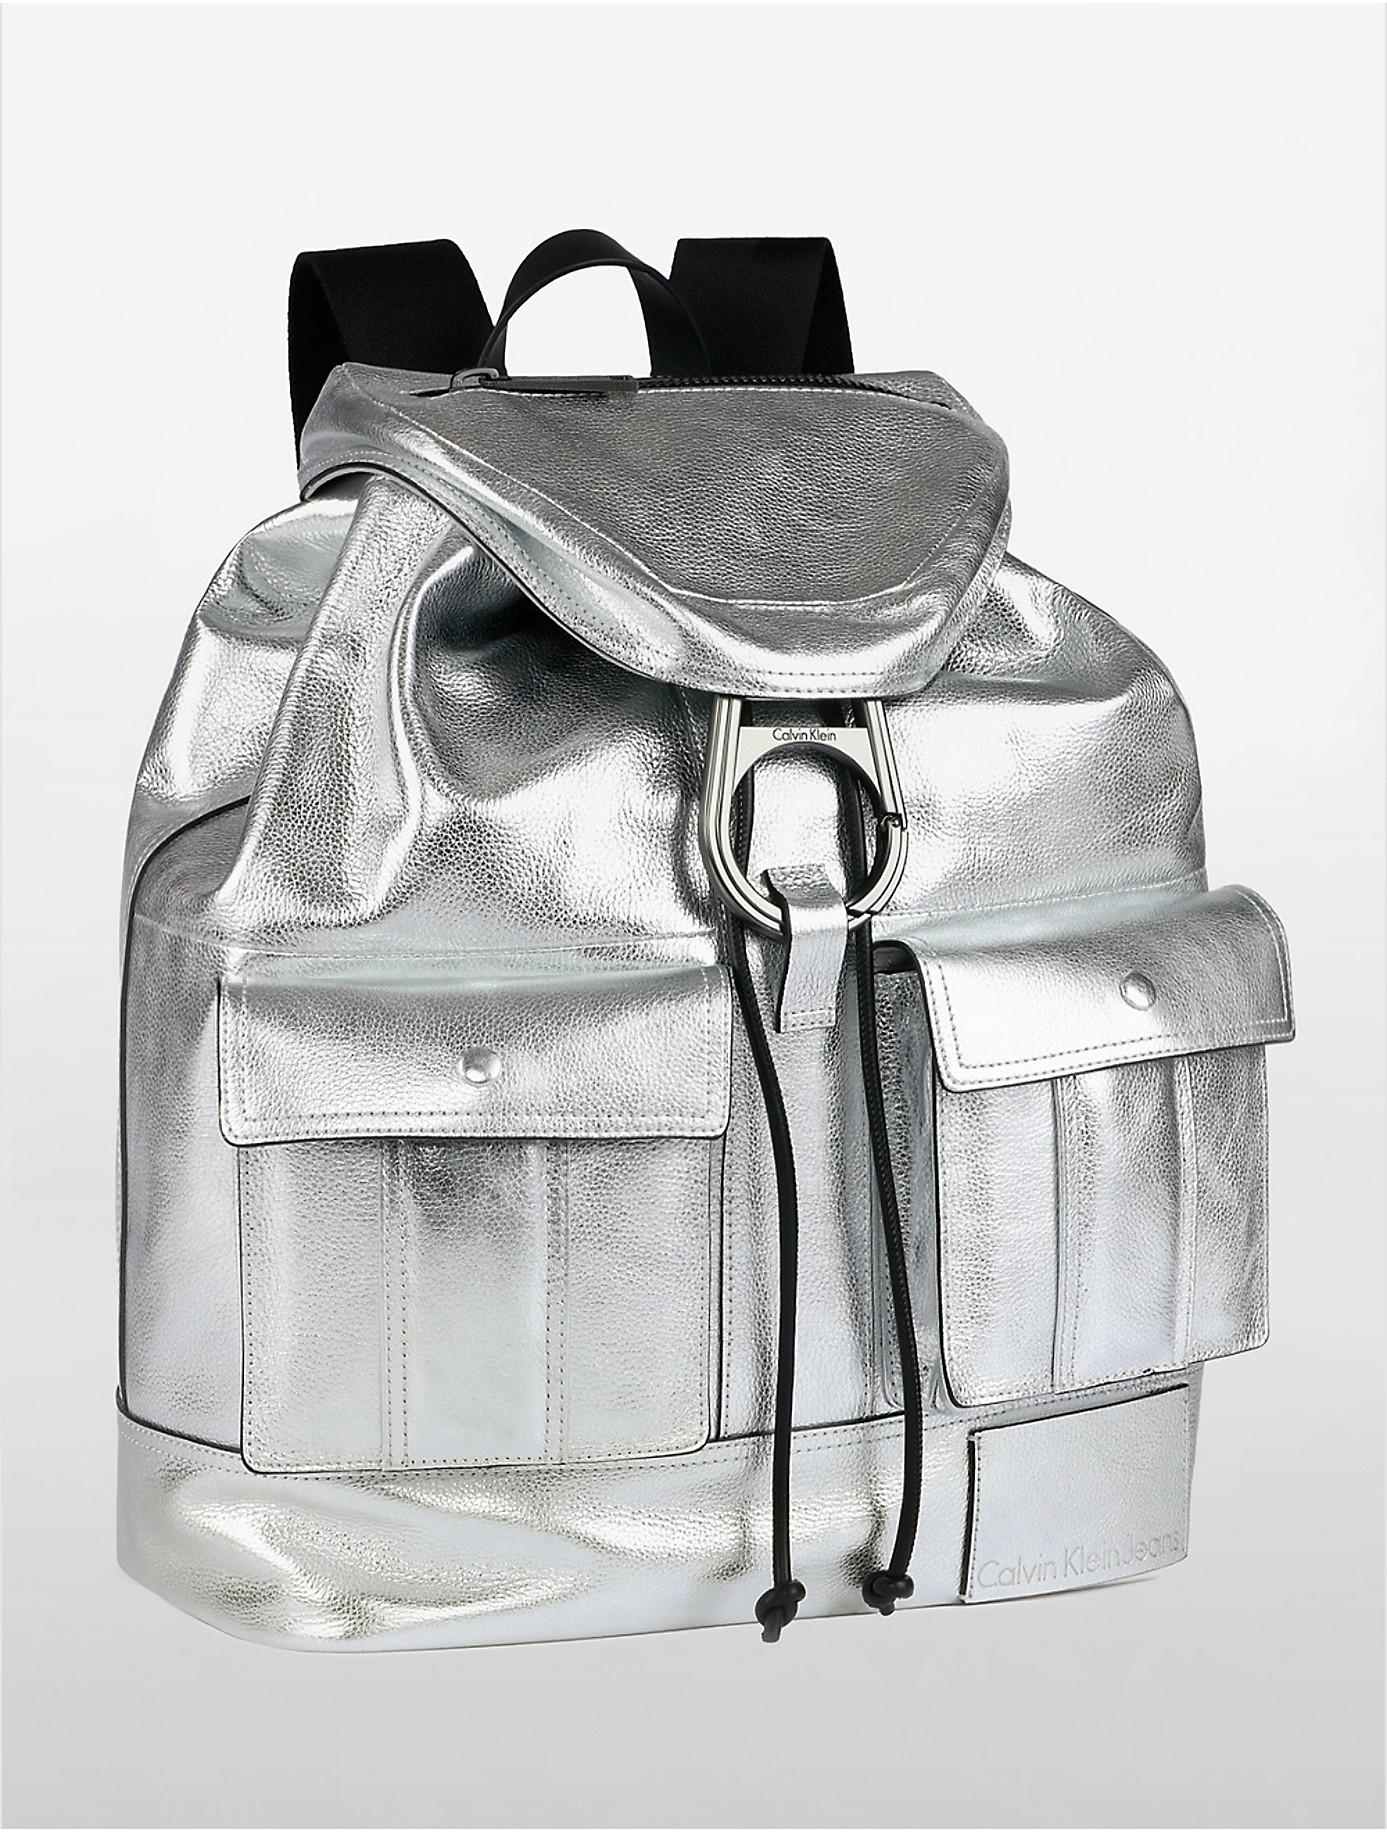 a8adc8f857 Lyst - Calvin Klein Jeans Urban Surplus Metallic Drawstring Backpack ...